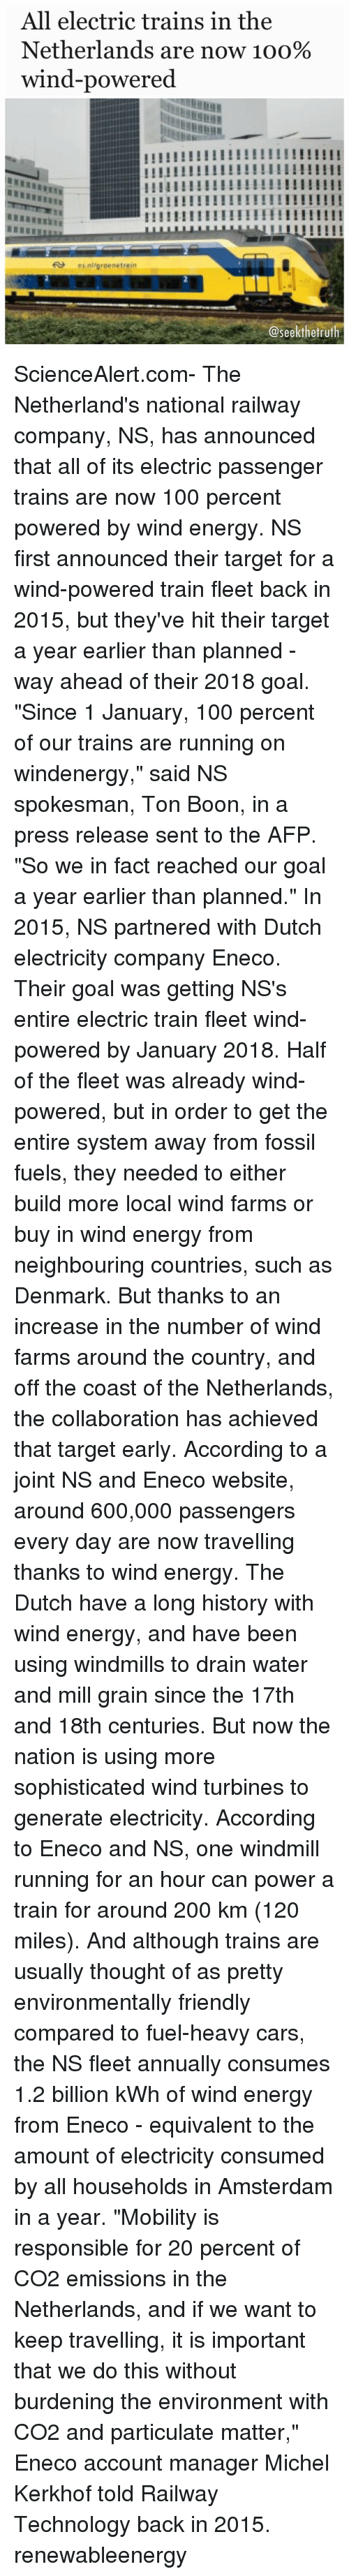 """Memes, Amsterdam, and Denmark: All electric trains in the  Netherlands are now 1oo%  wind-powered  !!!!!!!!!!!!!!!!IHI!!!!!!  ns ni groemetre in  @seek the trut ScienceAlert.com- The Netherland's national railway company, NS, has announced that all of its electric passenger trains are now 100 percent powered by wind energy. NS first announced their target for a wind-powered train fleet back in 2015, but they've hit their target a year earlier than planned - way ahead of their 2018 goal. """"Since 1 January, 100 percent of our trains are running on windenergy,"""" said NS spokesman, Ton Boon, in a press release sent to the AFP. """"So we in fact reached our goal a year earlier than planned."""" In 2015, NS partnered with Dutch electricity company Eneco. Their goal was getting NS's entire electric train fleet wind-powered by January 2018. Half of the fleet was already wind-powered, but in order to get the entire system away from fossil fuels, they needed to either build more local wind farms or buy in wind energy from neighbouring countries, such as Denmark. But thanks to an increase in the number of wind farms around the country, and off the coast of the Netherlands, the collaboration has achieved that target early. According to a joint NS and Eneco website, around 600,000 passengers every day are now travelling thanks to wind energy. The Dutch have a long history with wind energy, and have been using windmills to drain water and mill grain since the 17th and 18th centuries. But now the nation is using more sophisticated wind turbines to generate electricity. According to Eneco and NS, one windmill running for an hour can power a train for around 200 km (120 miles). And although trains are usually thought of as pretty environmentally friendly compared to fuel-heavy cars, the NS fleet annually consumes 1.2 billion kWh of wind energy from Eneco - equivalent to the amount of electricity consumed by all households in Amsterdam in a year. """"Mobility is responsible for 20 percent of CO"""